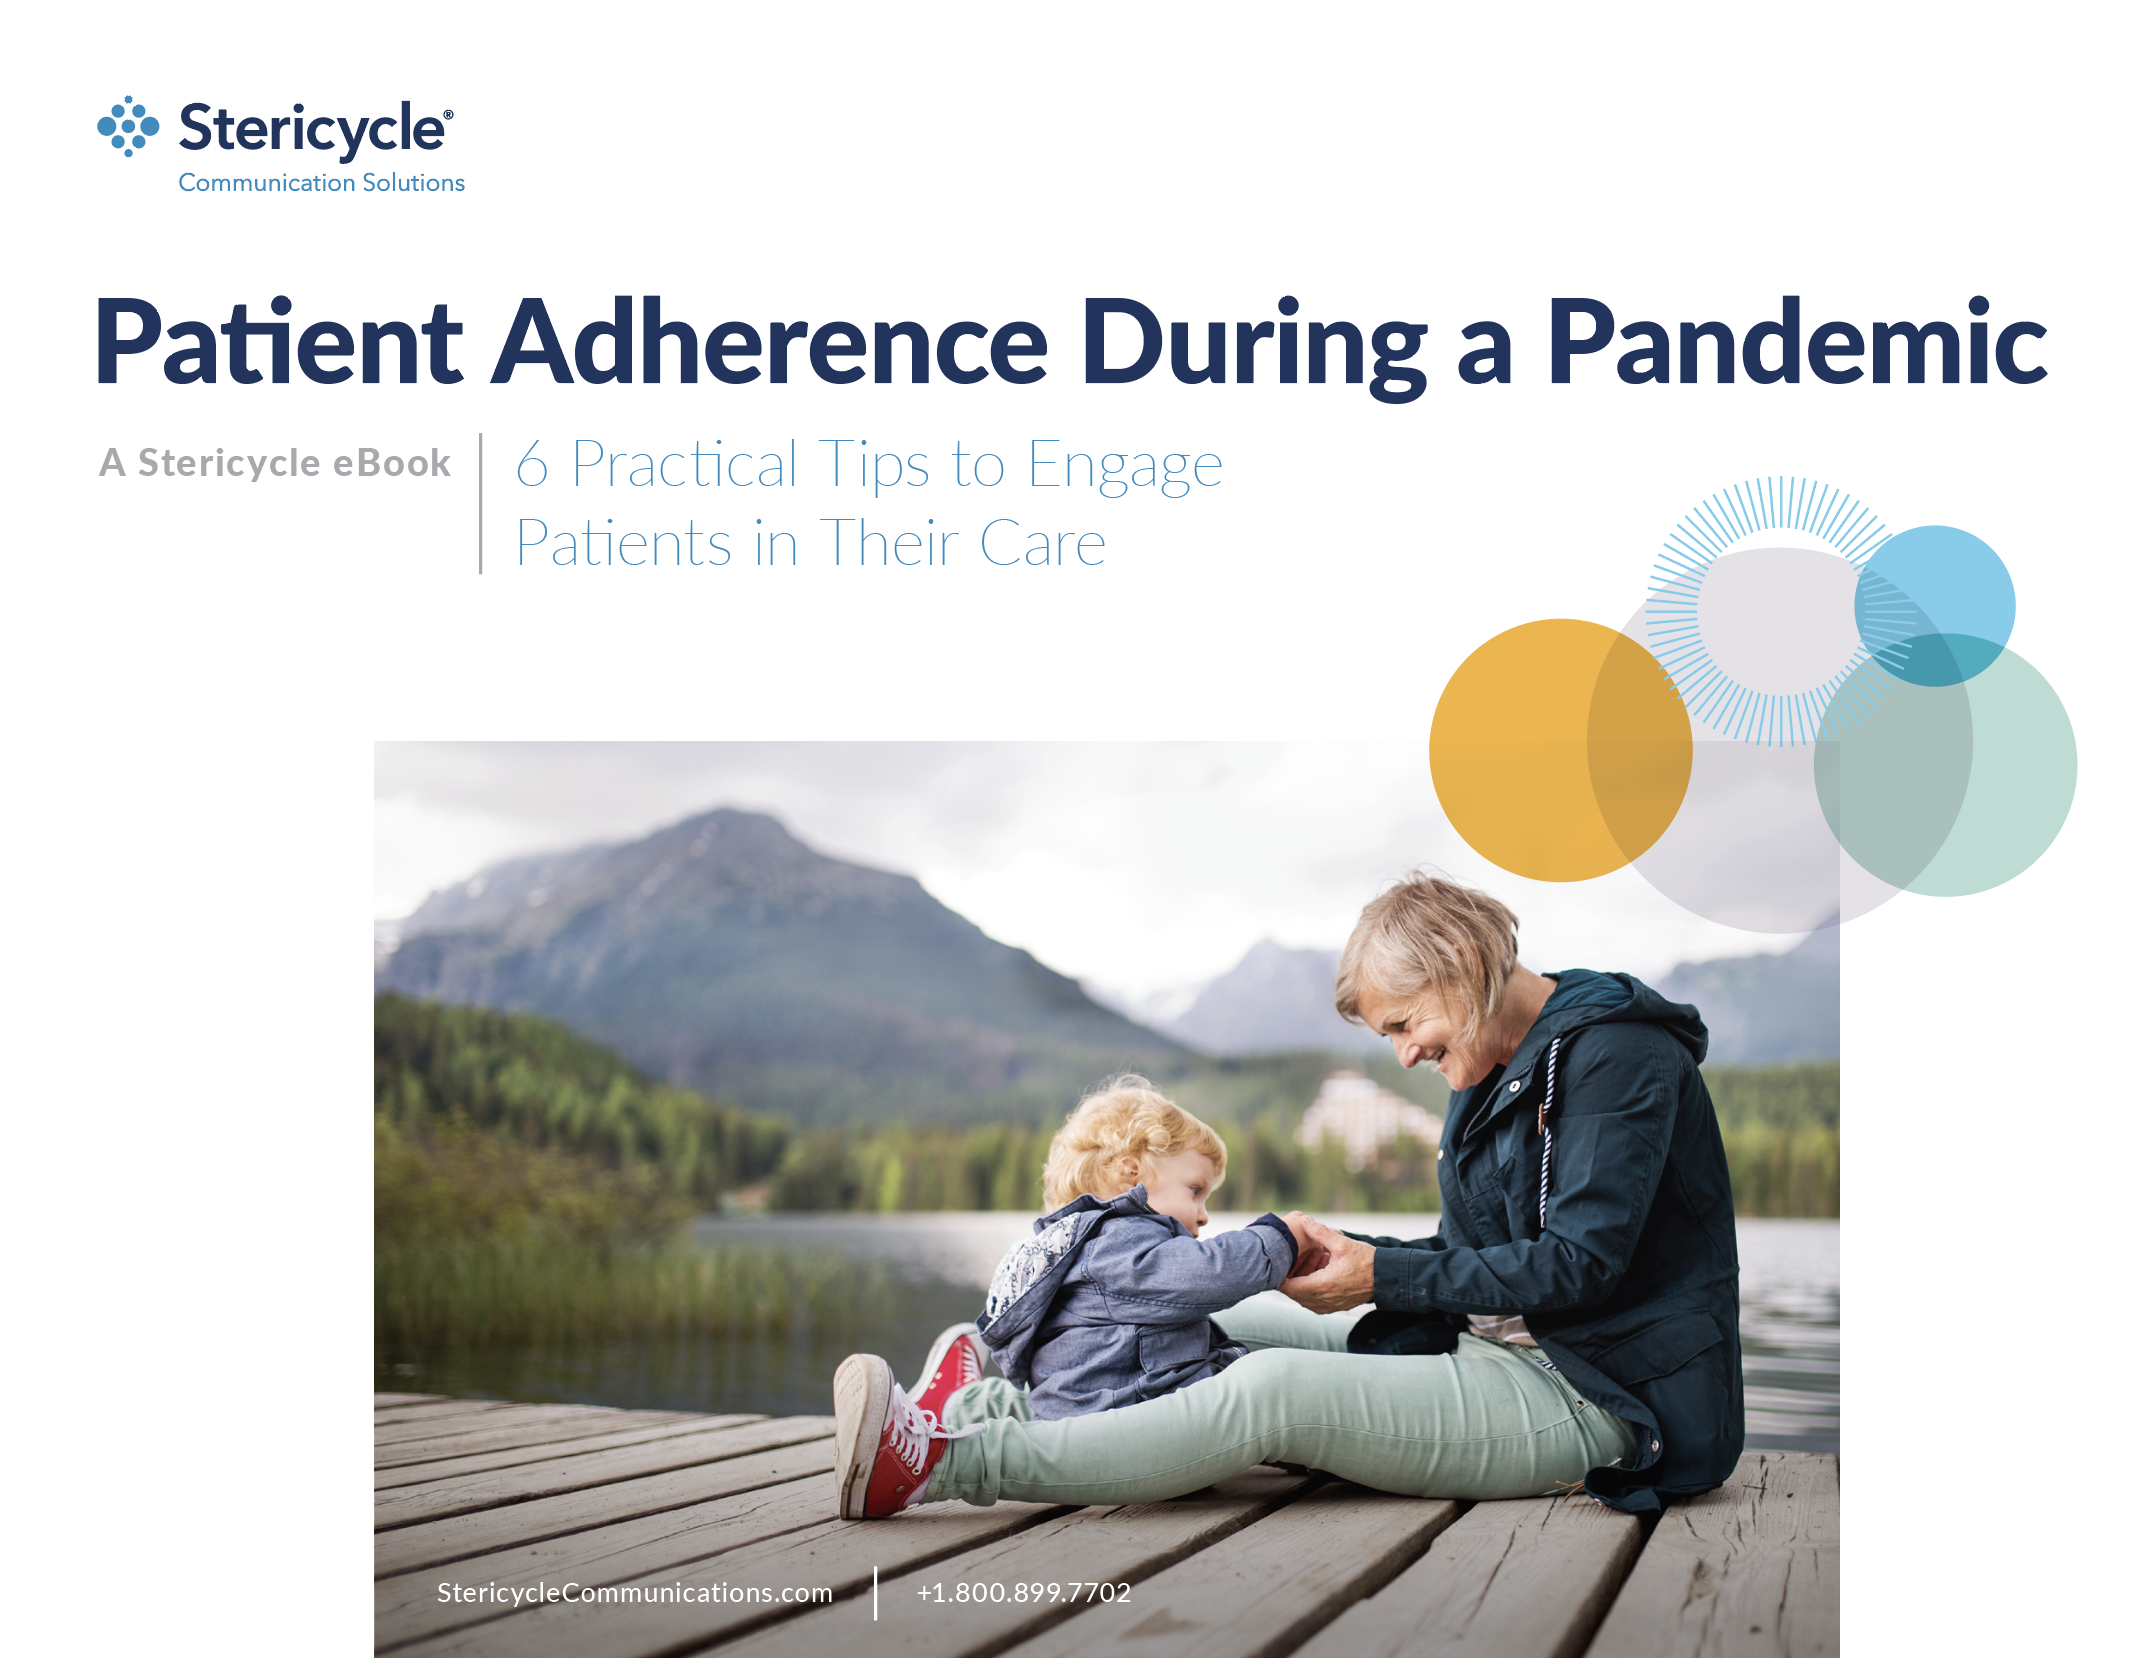 Patient Adherence During A Pandemic eBook Thumbnail